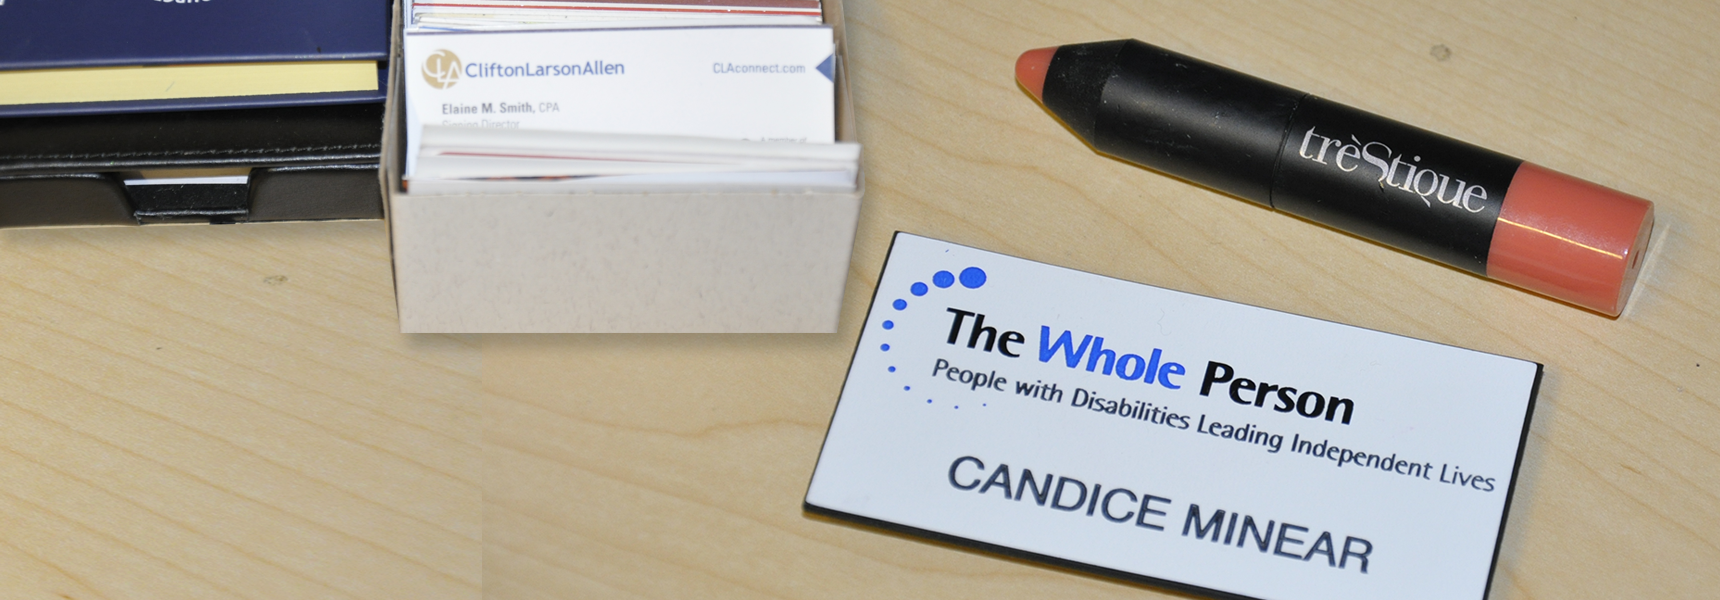 Business cards, lipstick and name badge for Candice Minear